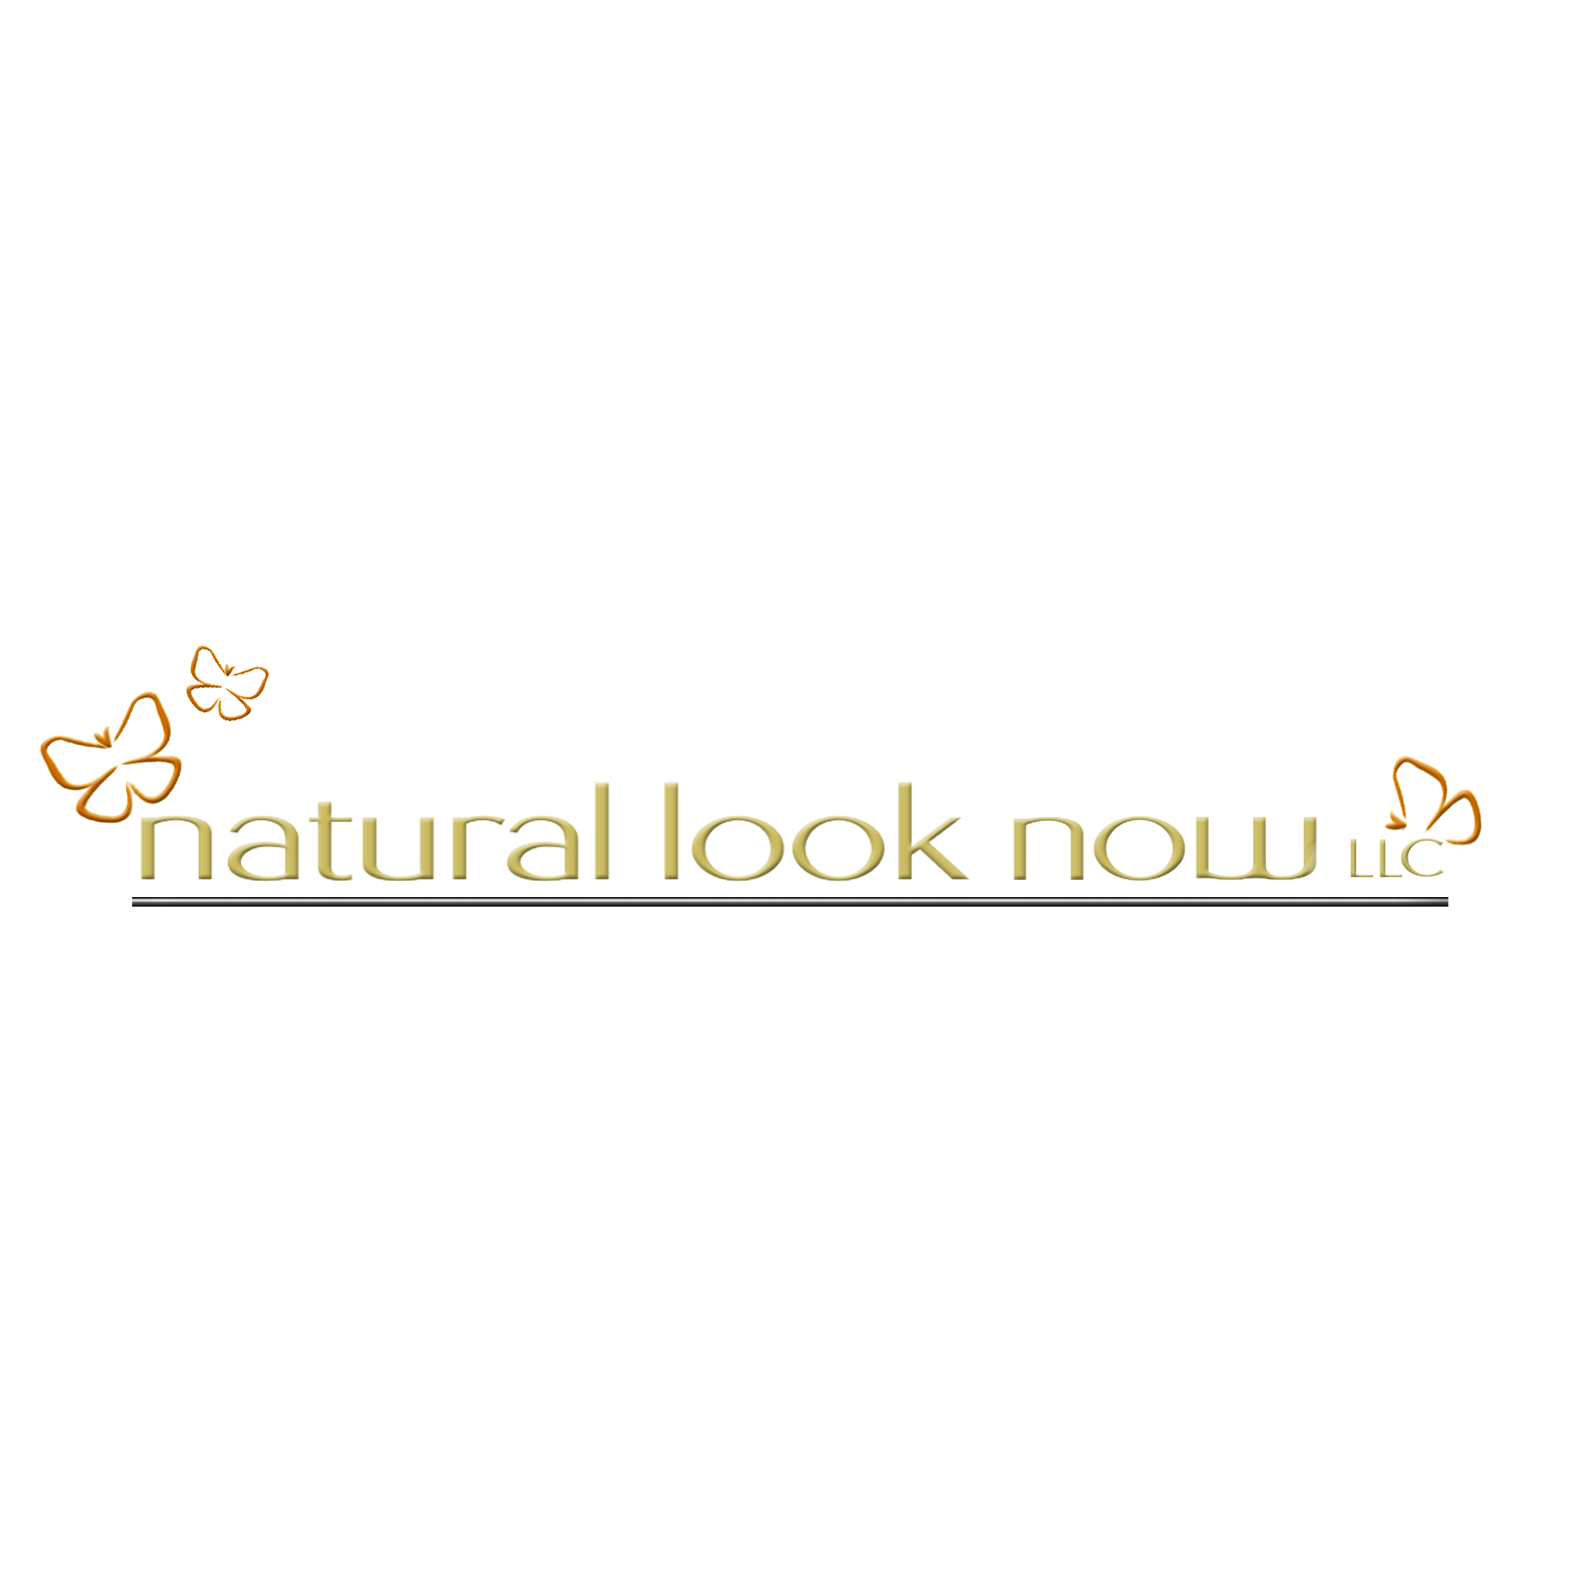 Natural Look Now LLC